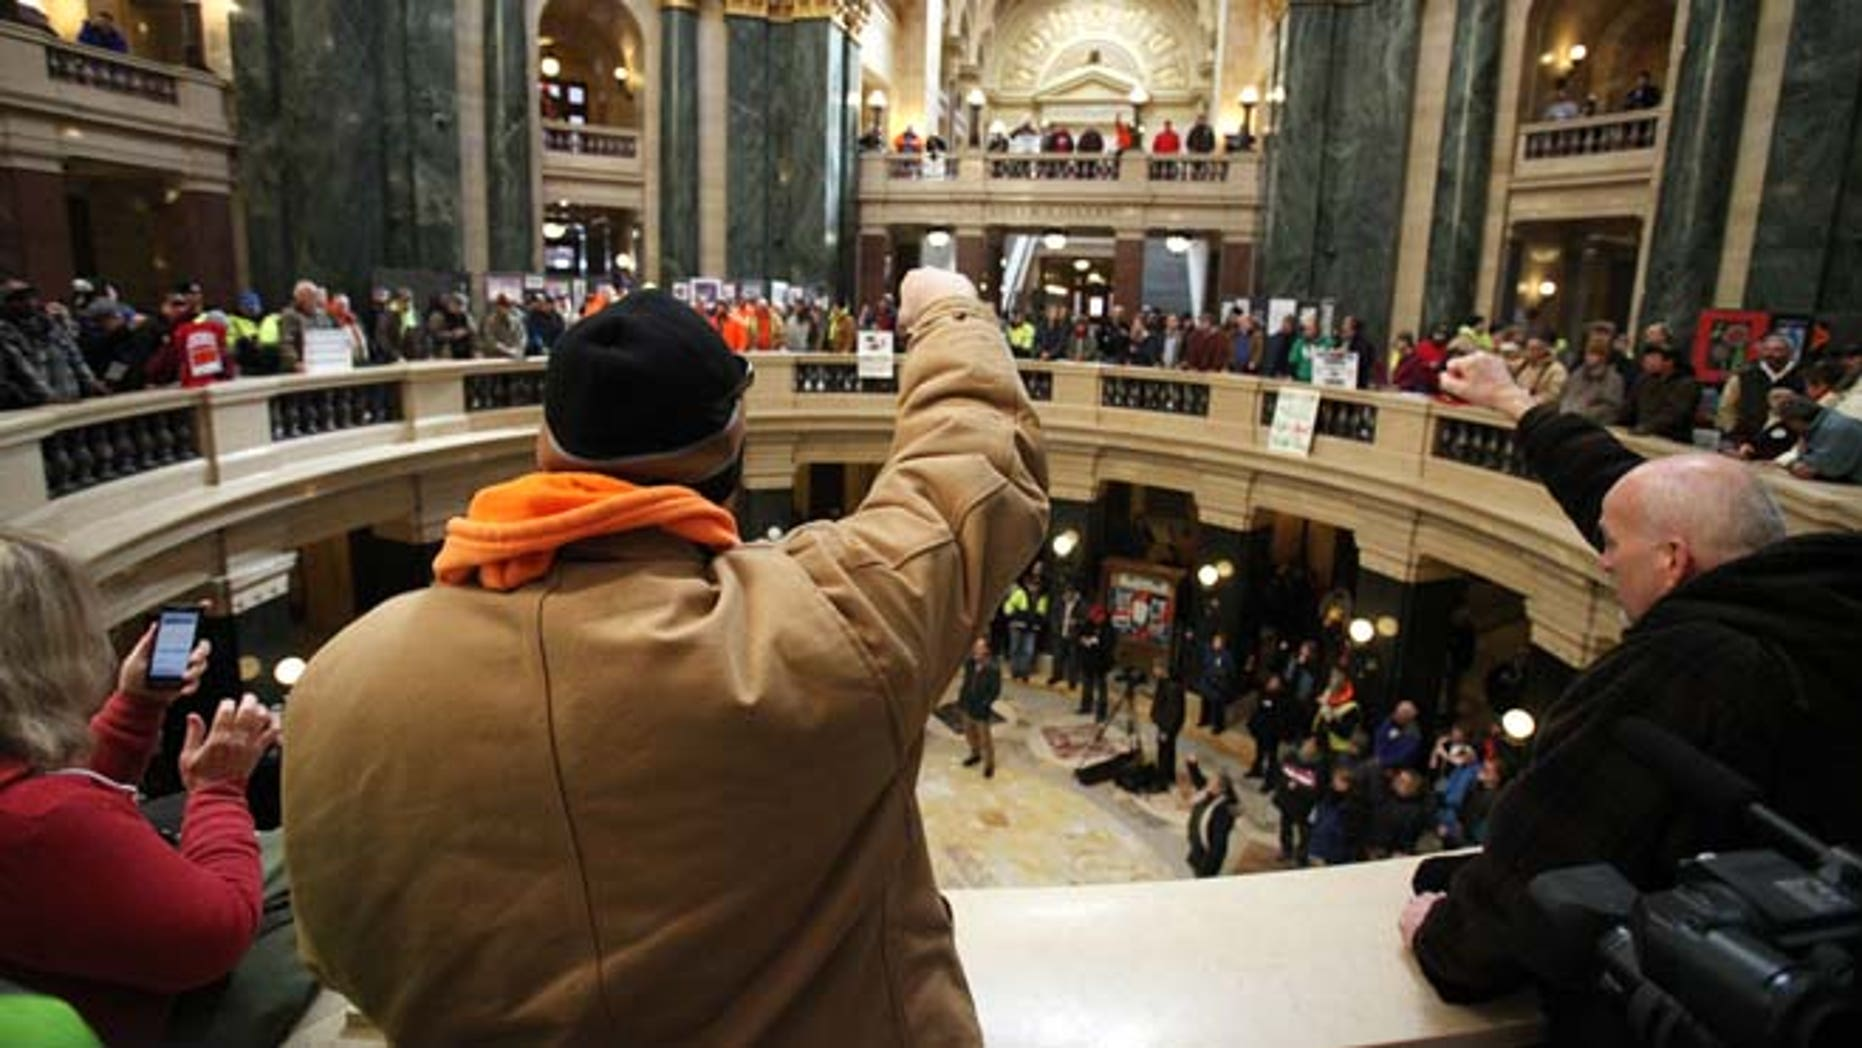 March 5, 2015: A crowd rallies inside the Wisconsin State Capitol as the state Assembly debates the right-to-work bill in Madison, Wis.